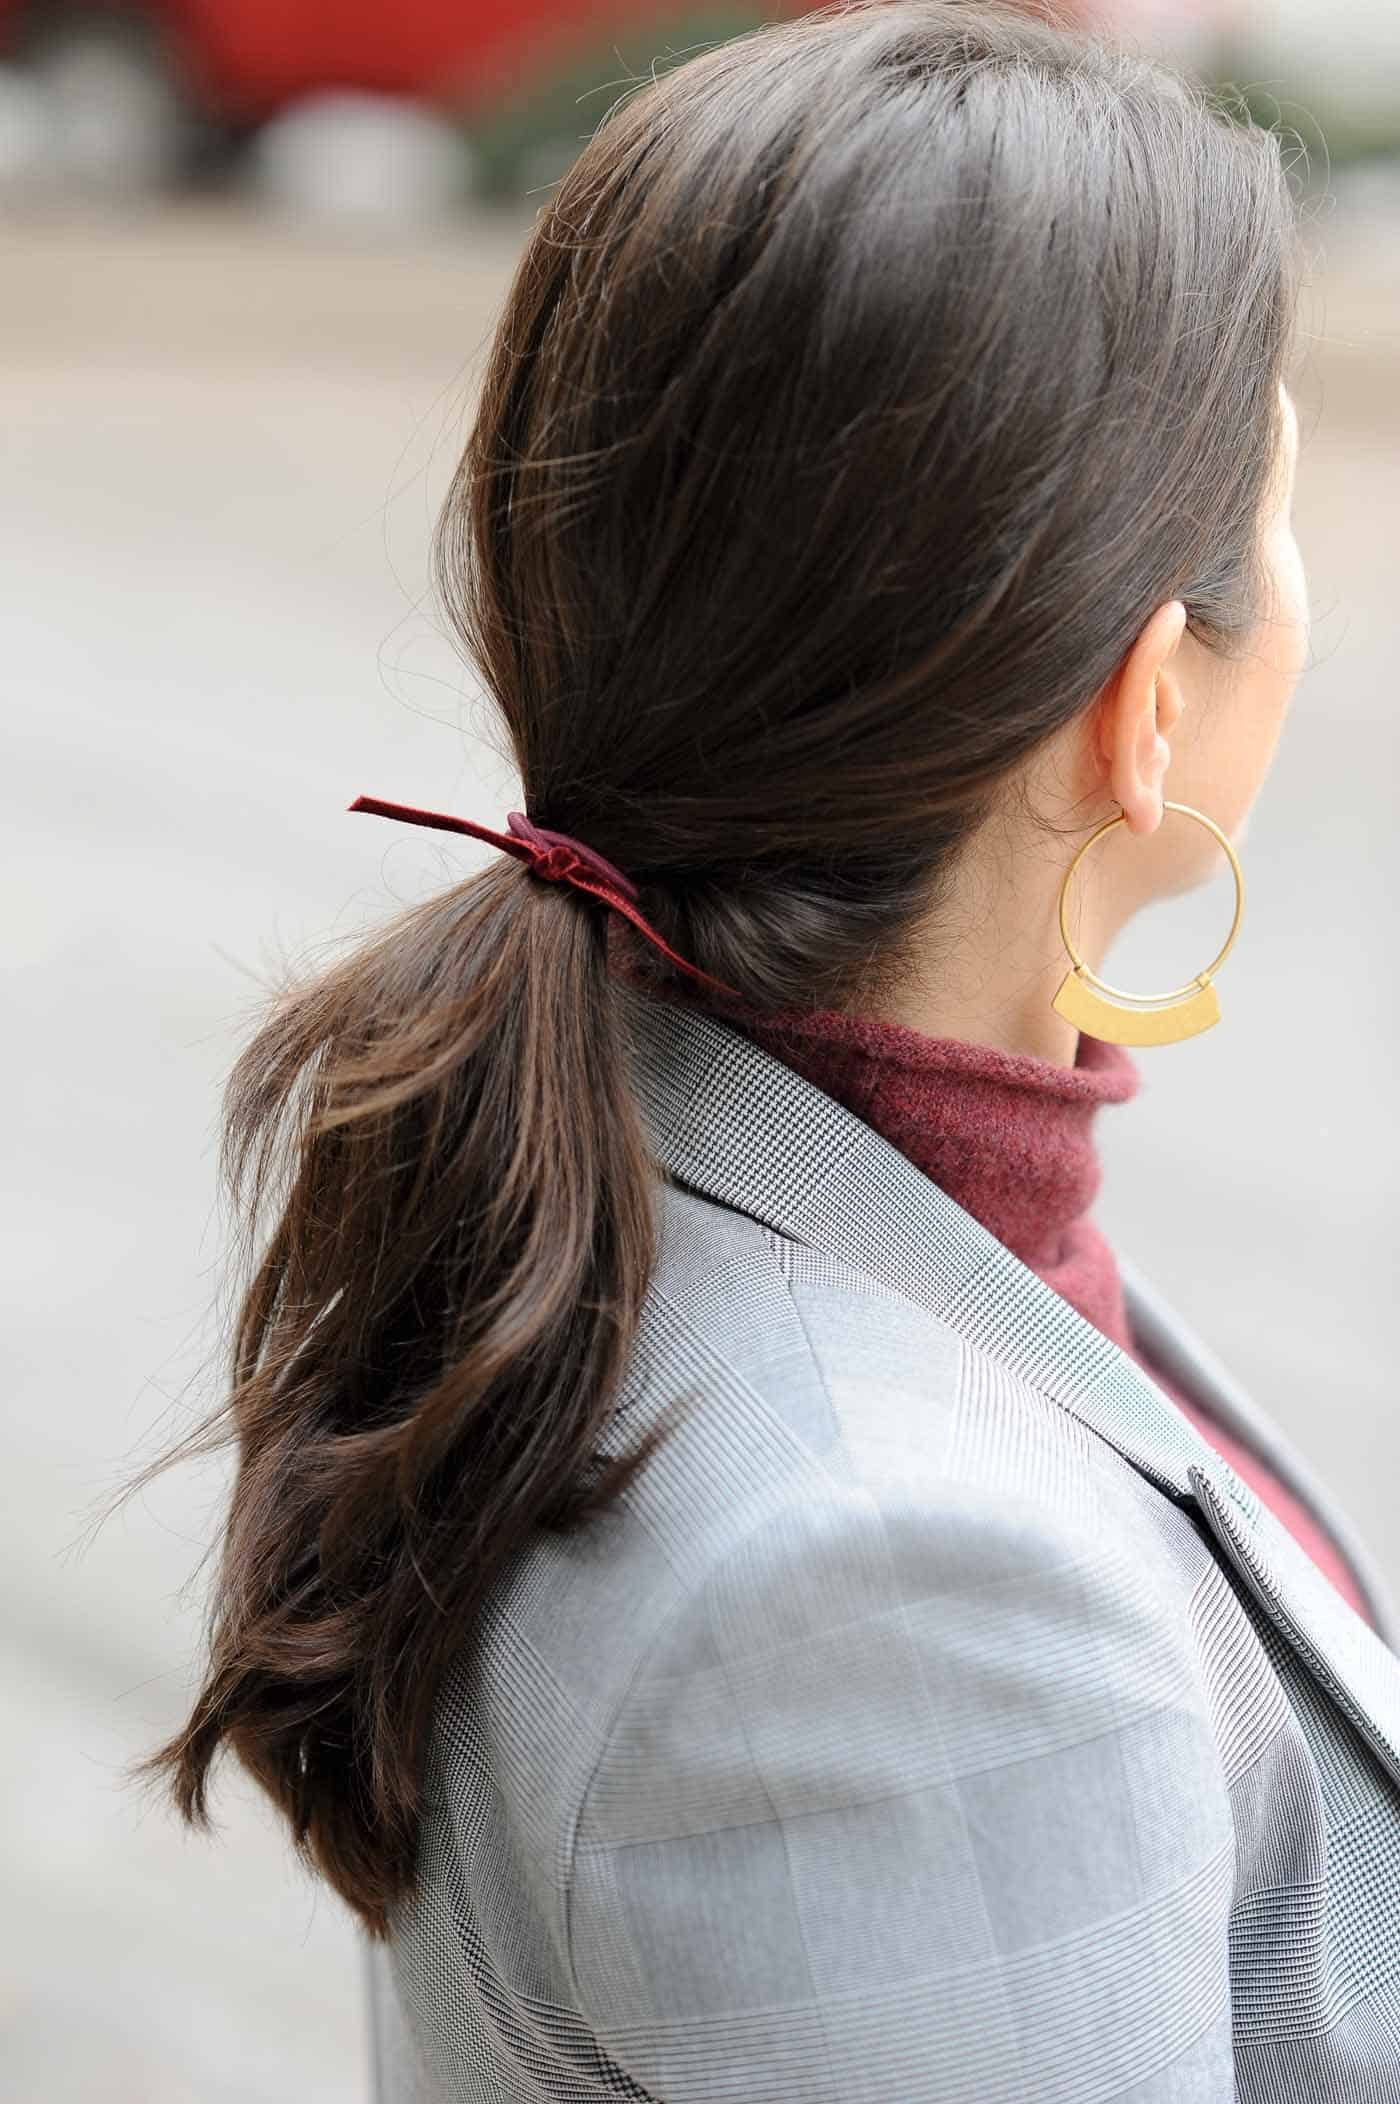 simple hairties, fun ways to dress up a ponytail - My Style Vita @mystylevita